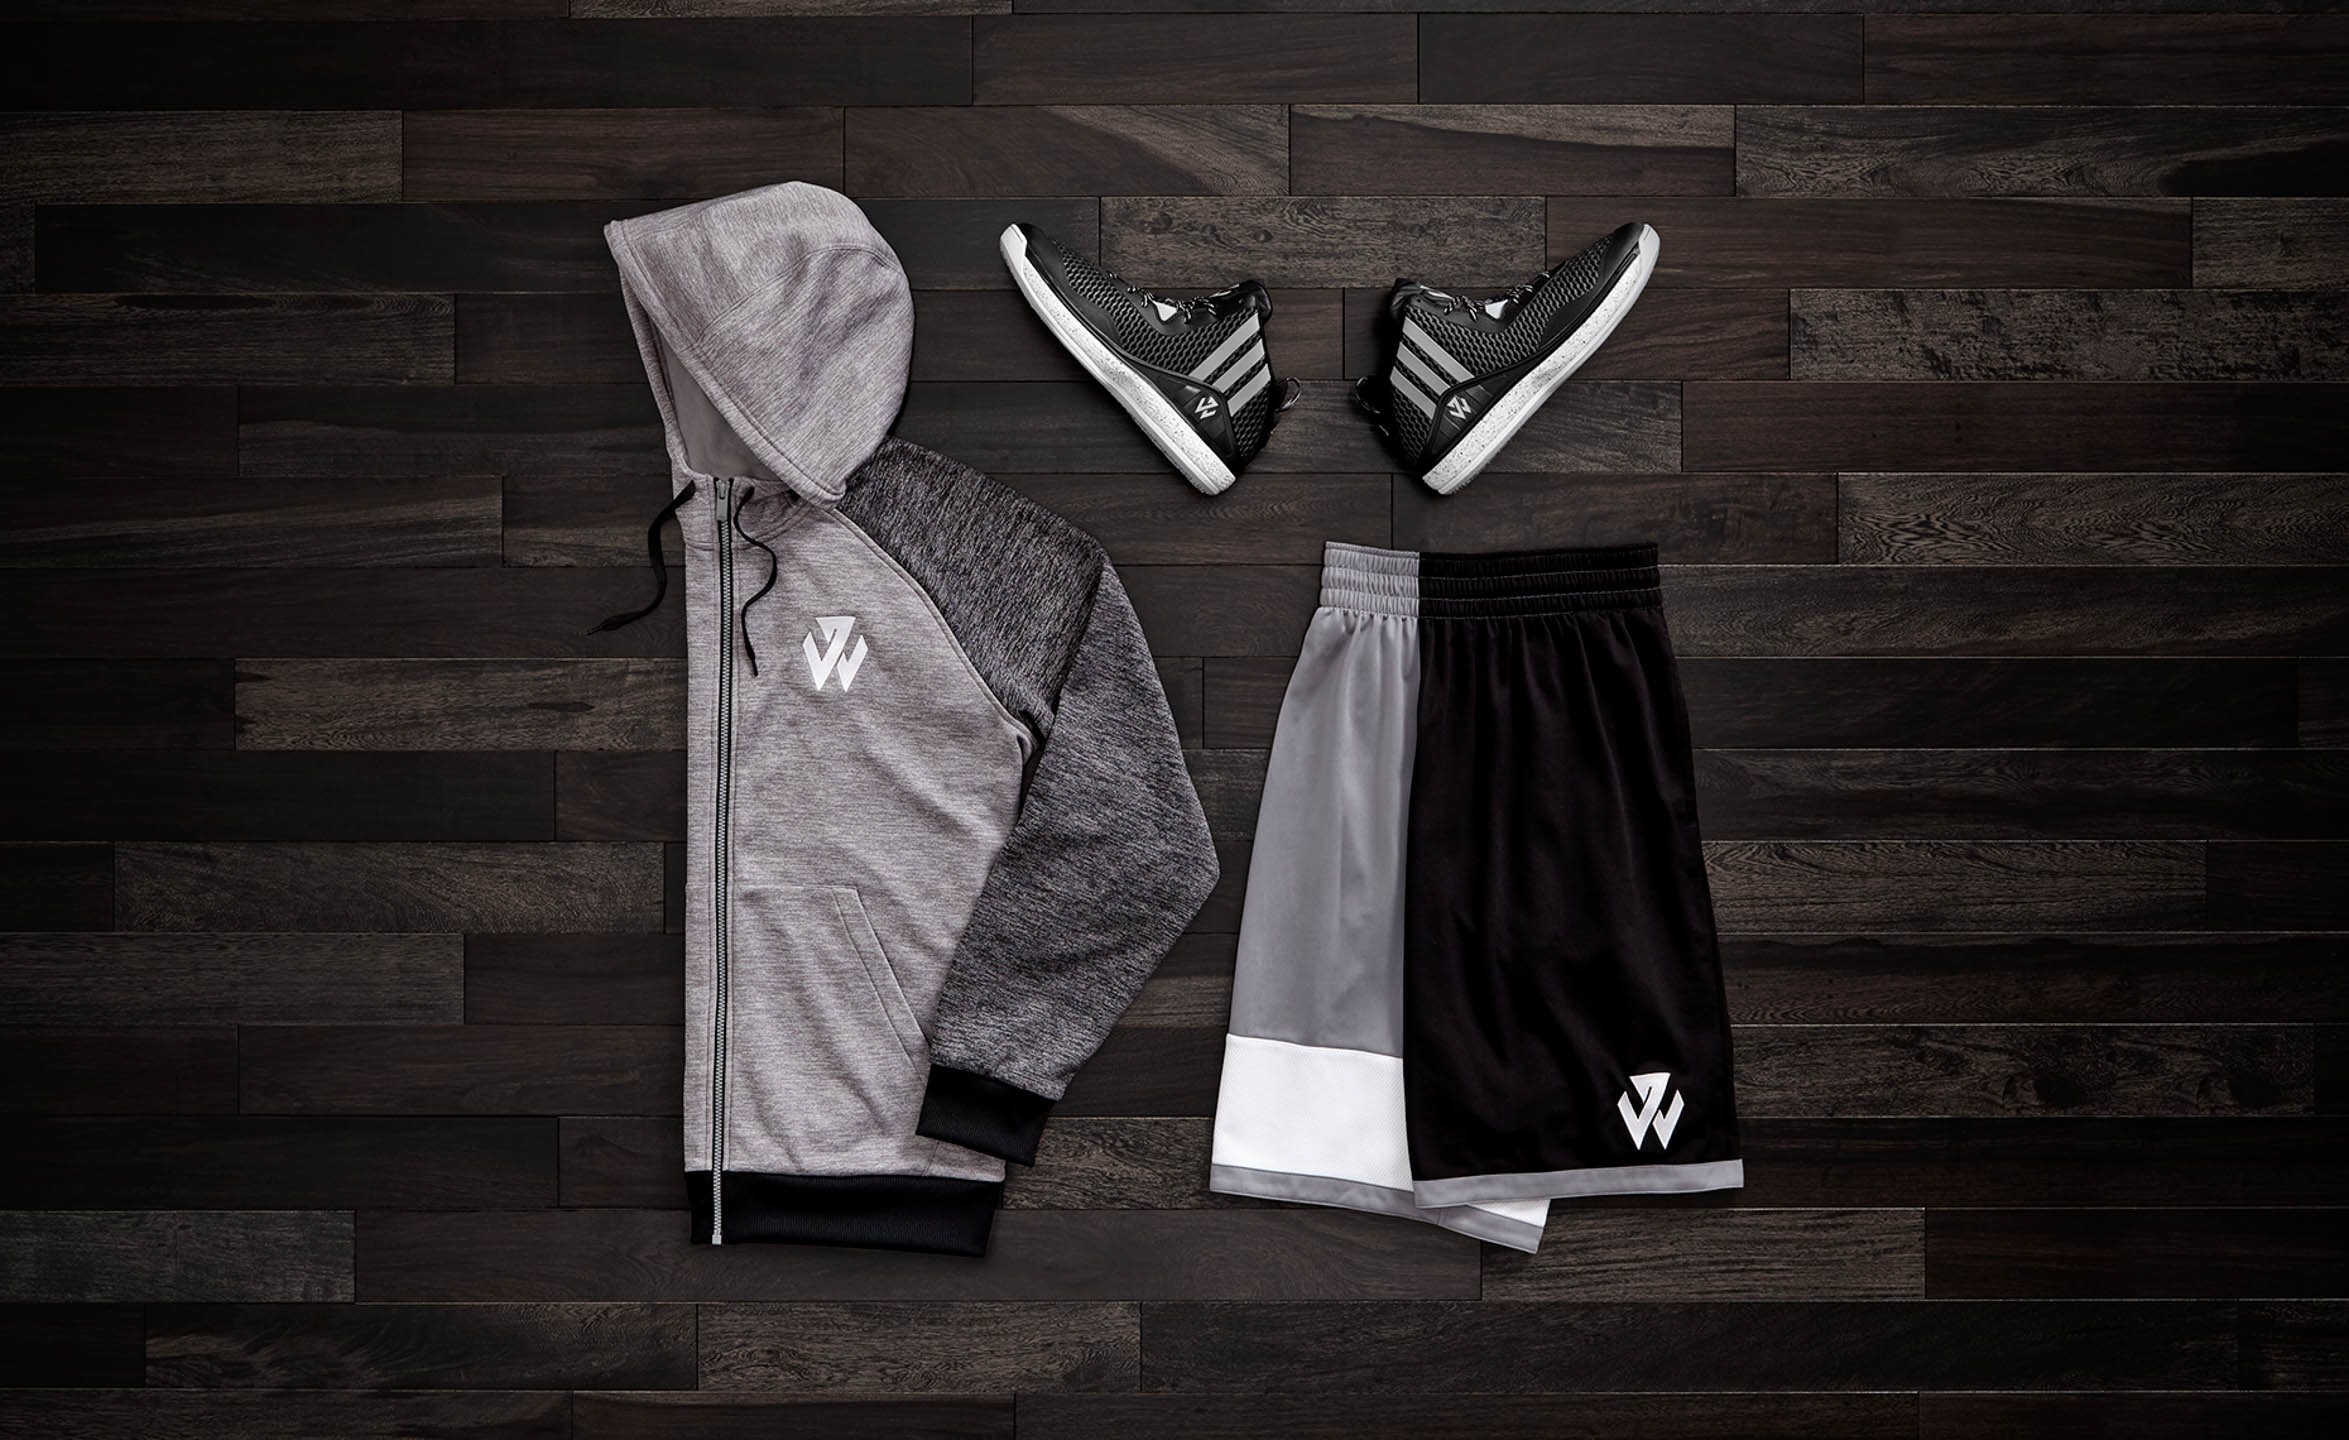 Adidas John Wall basketball footwear and clothing